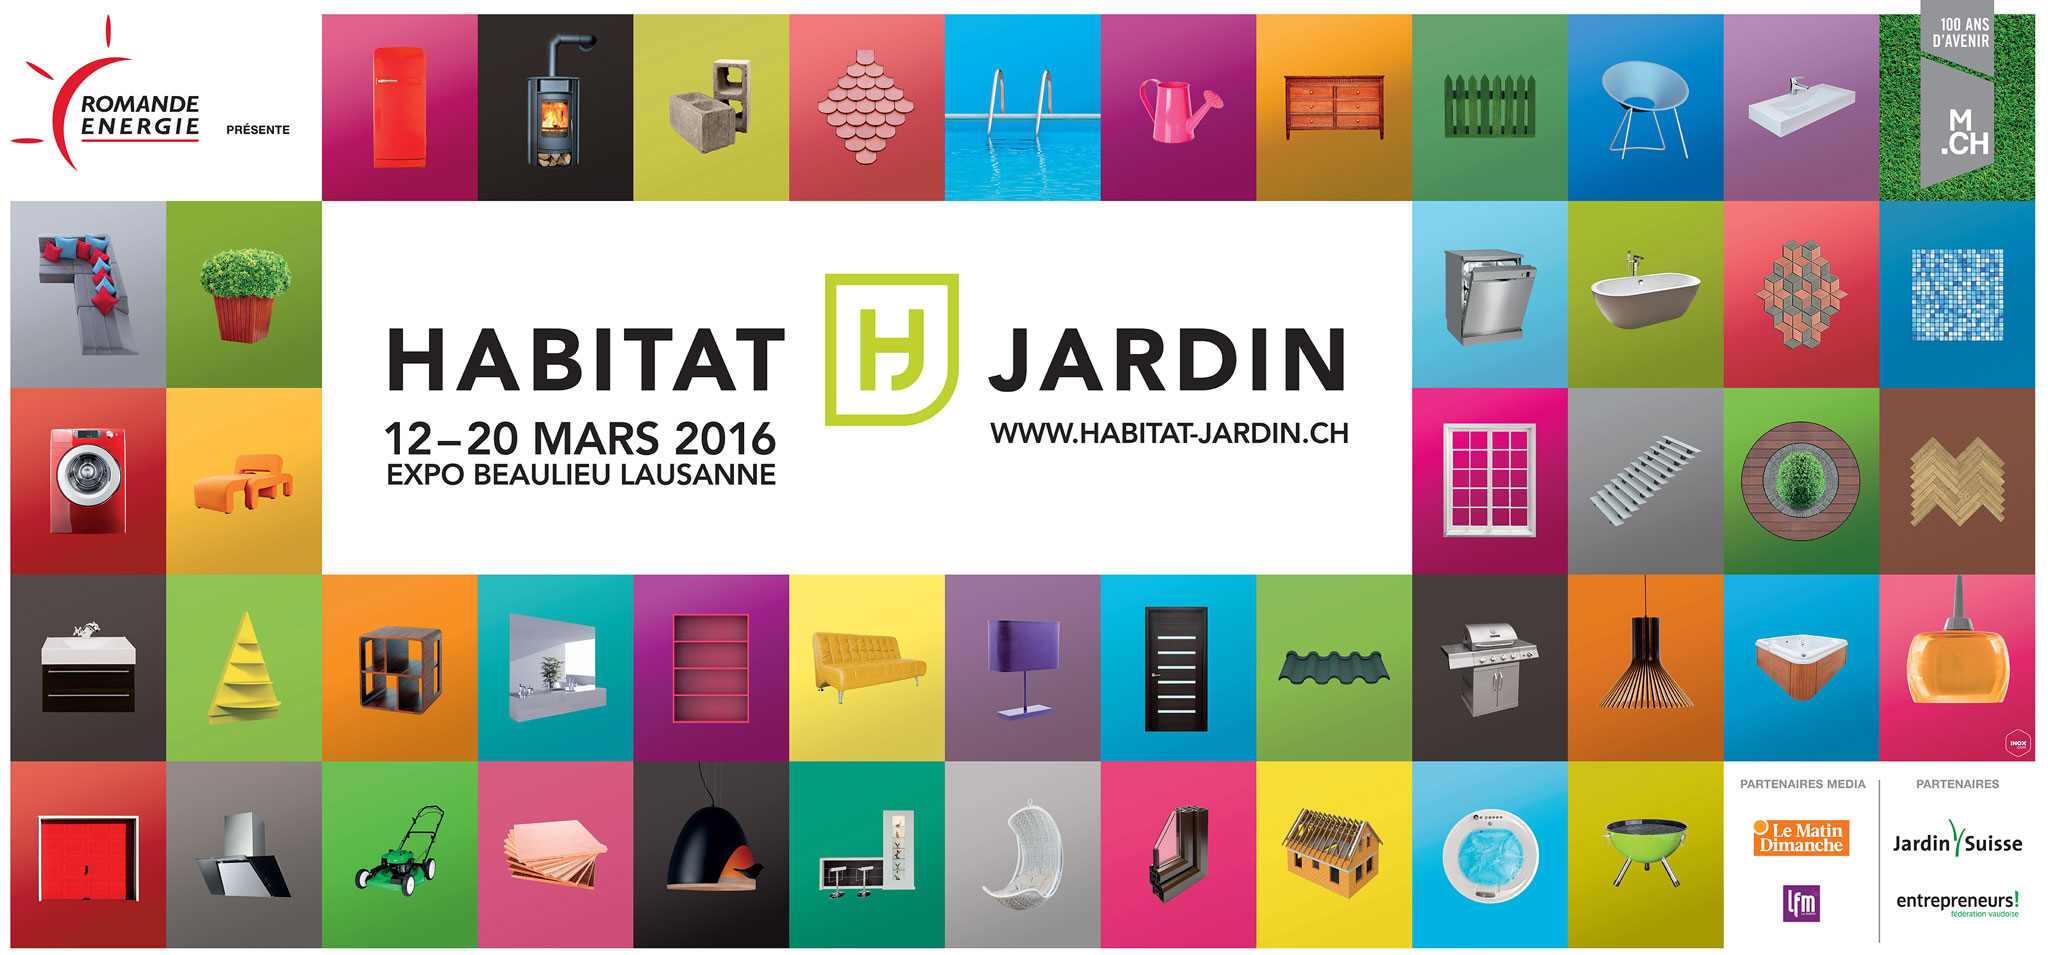 Salon habitat jardin 2016 lausanne lamatec for Salon habitat